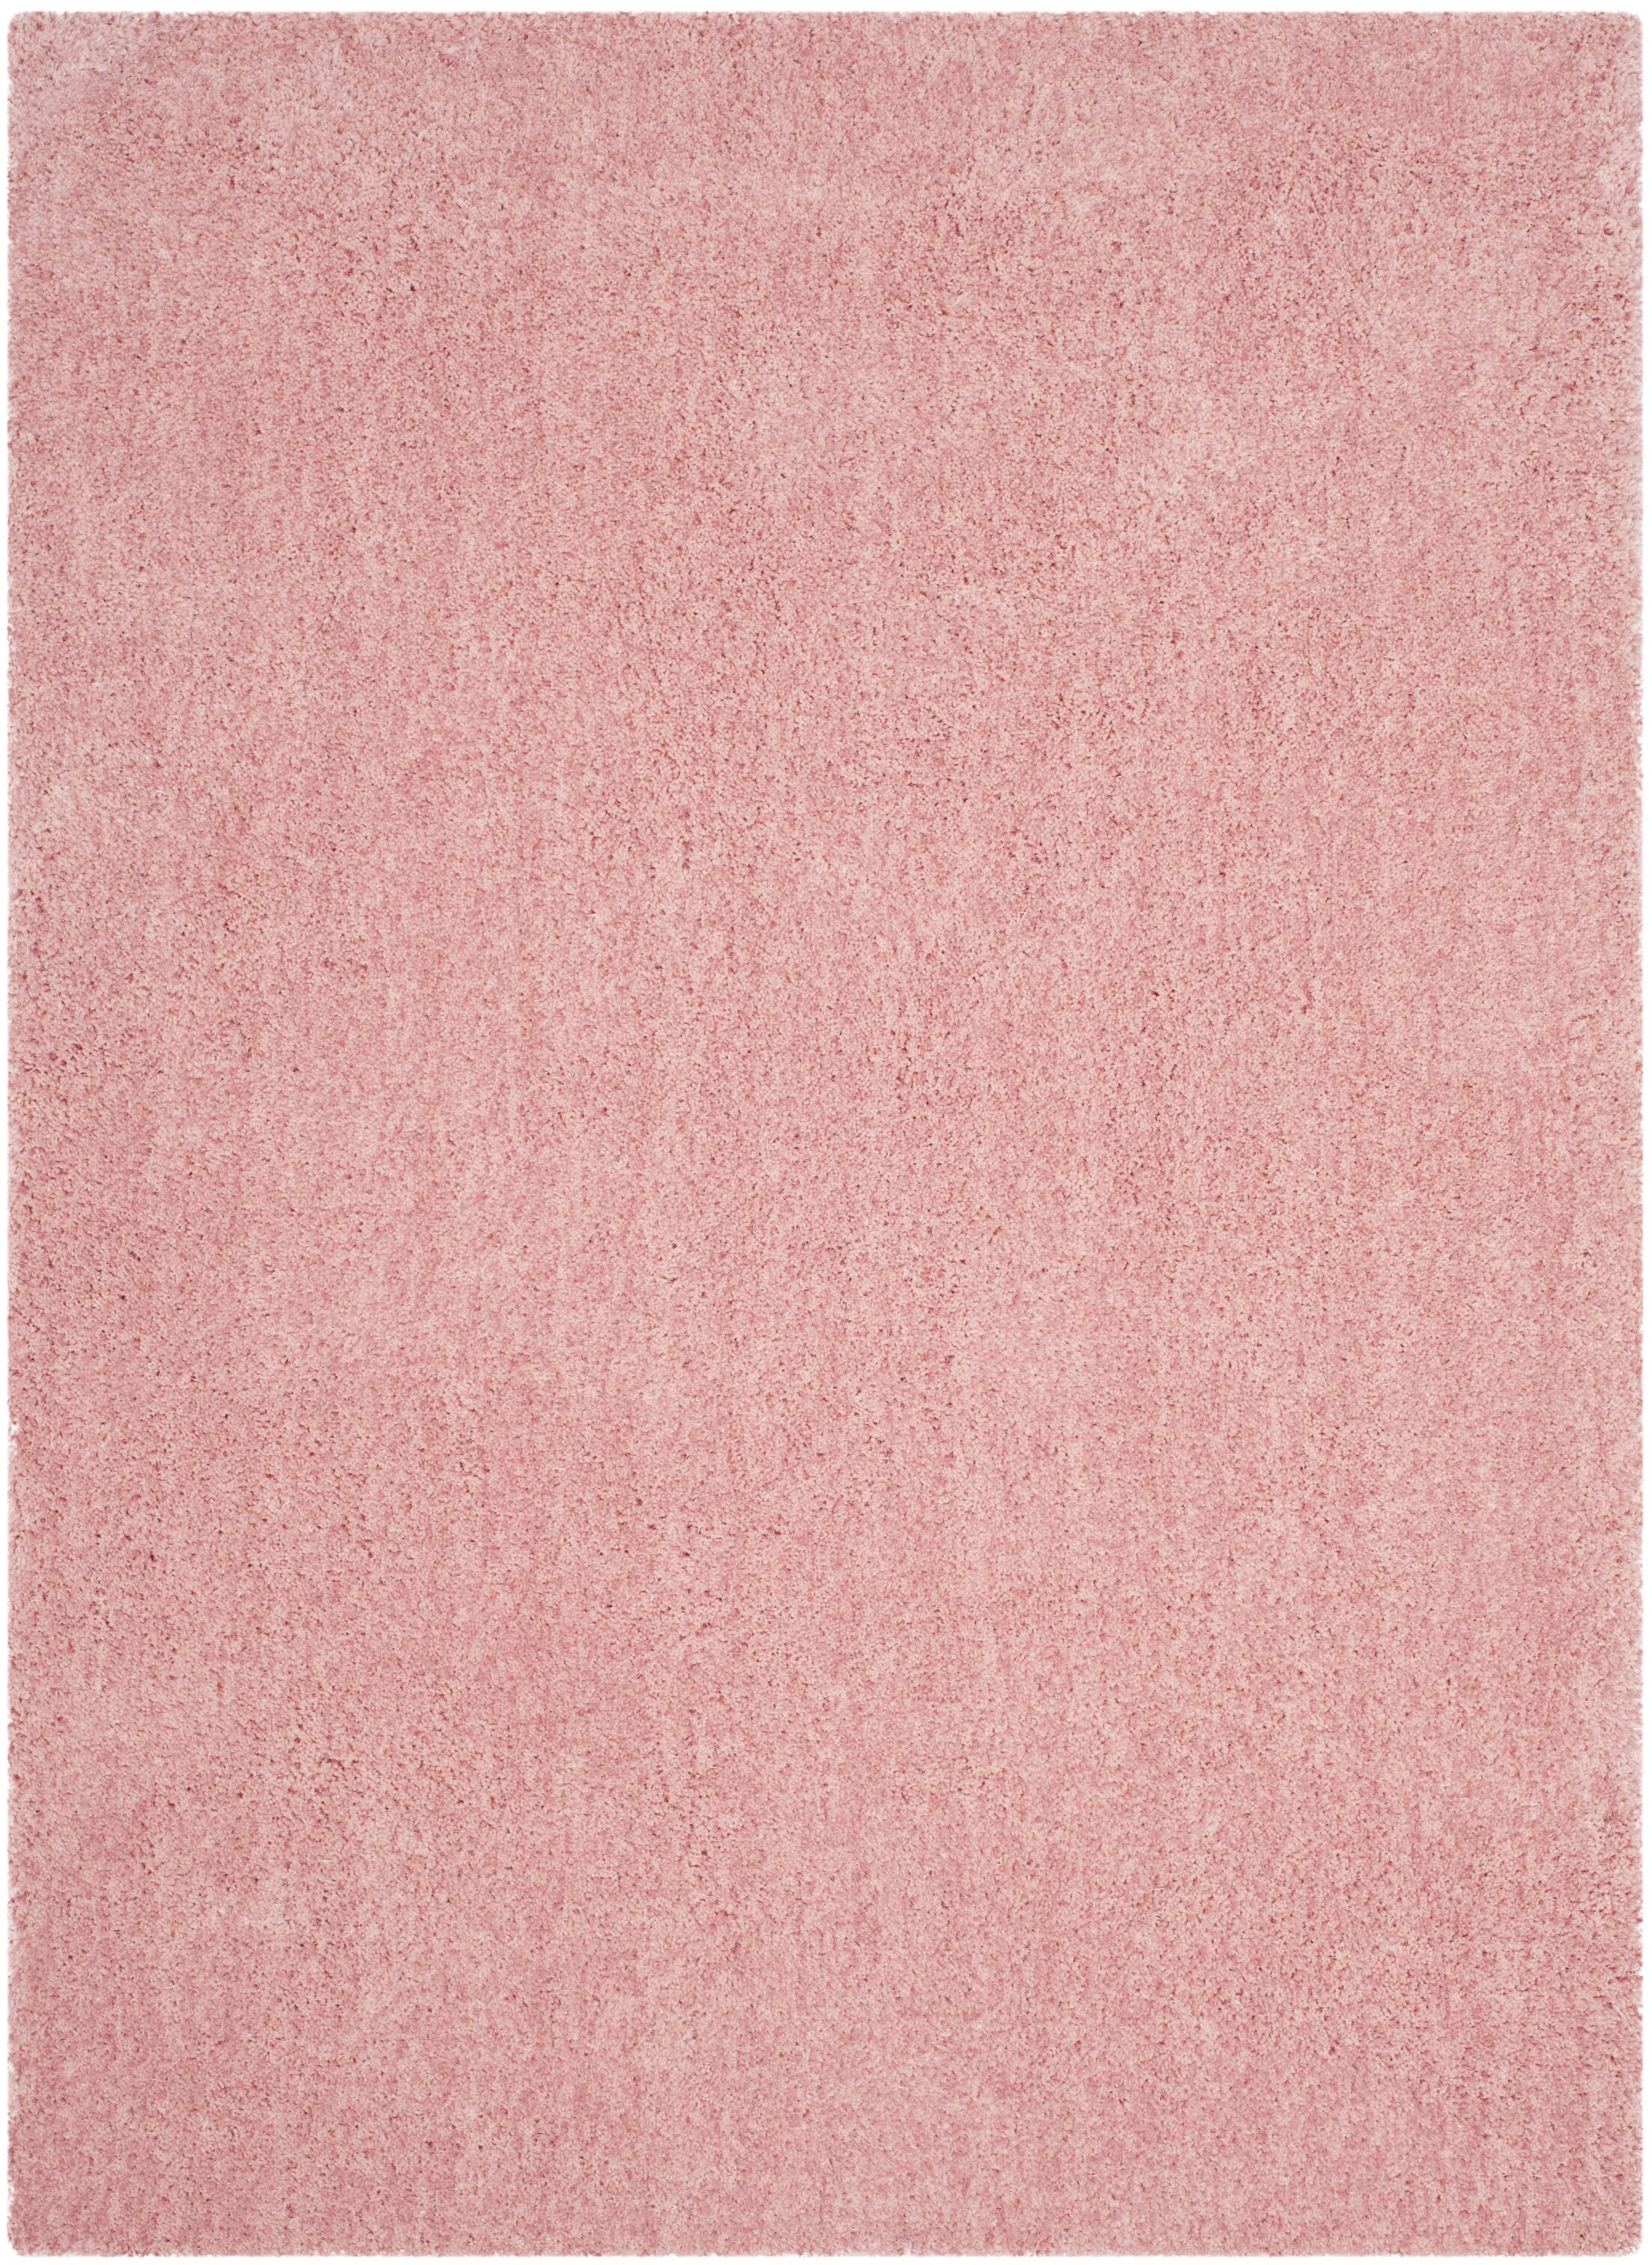 Winnett Hand-Tufted Pink Area Rug Rug Size: Rectangle 5' x 7'